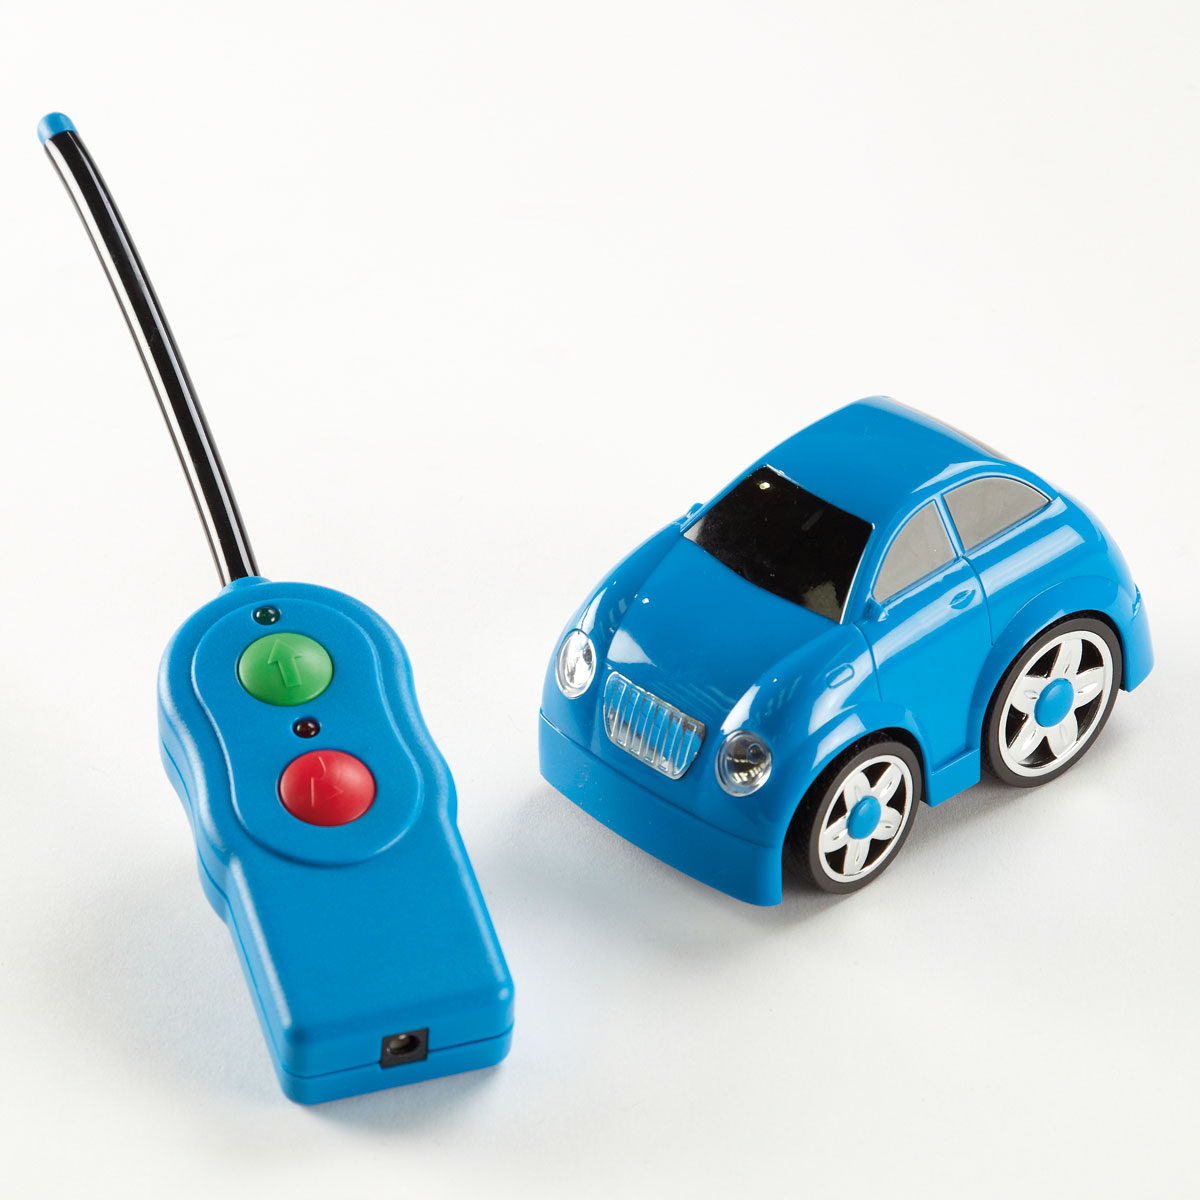 buy remote control car with Tts Easi Cars And Docking Station Rechargeable Remote Control Cars Set Of 4 Ey04198 4350 on Tts Easi Cars And Docking Station Rechargeable Remote Control Cars Set Of 4 ey04198 4350 moreover Universal Turbo Manual Boost Controller And Gauge Kit 2 additionally Cooper S Jcw R56 2008 also 131993350408 moreover Toy itg.